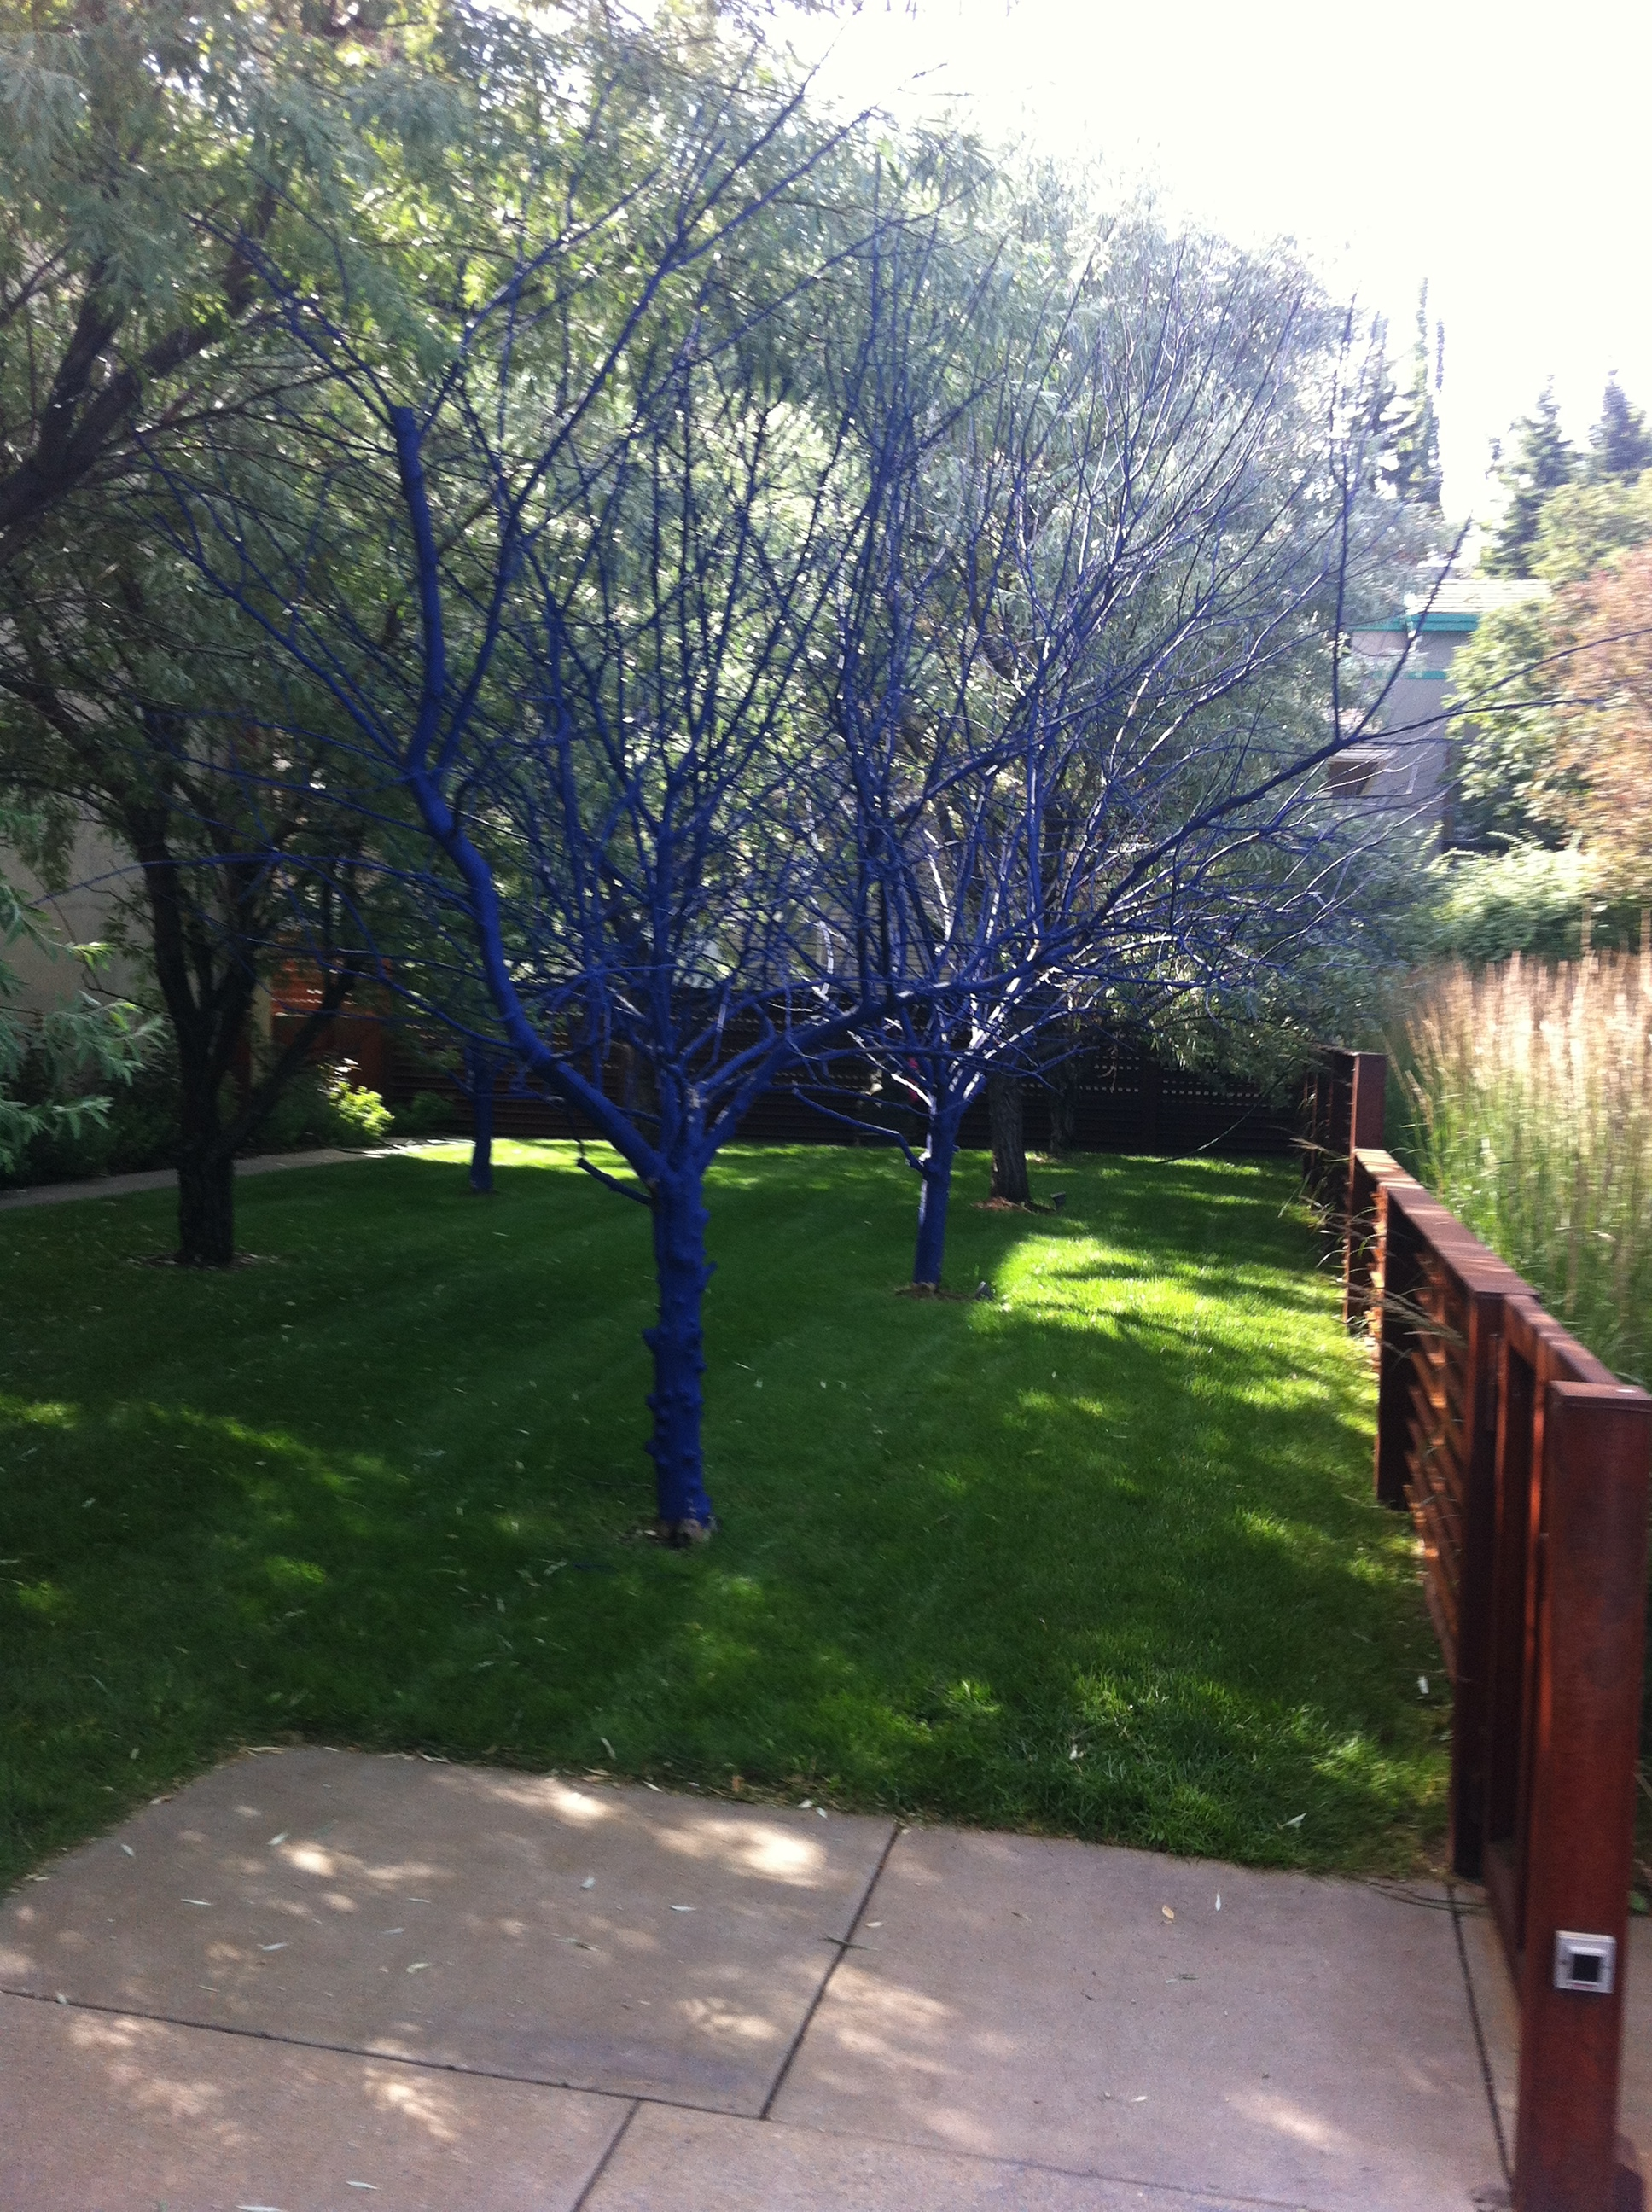 Not everything in Mount Royal is conservative and historic, found these blue trees that have a wonderful luminous quality that is ver contemporary.  Could this be an environmental statement?